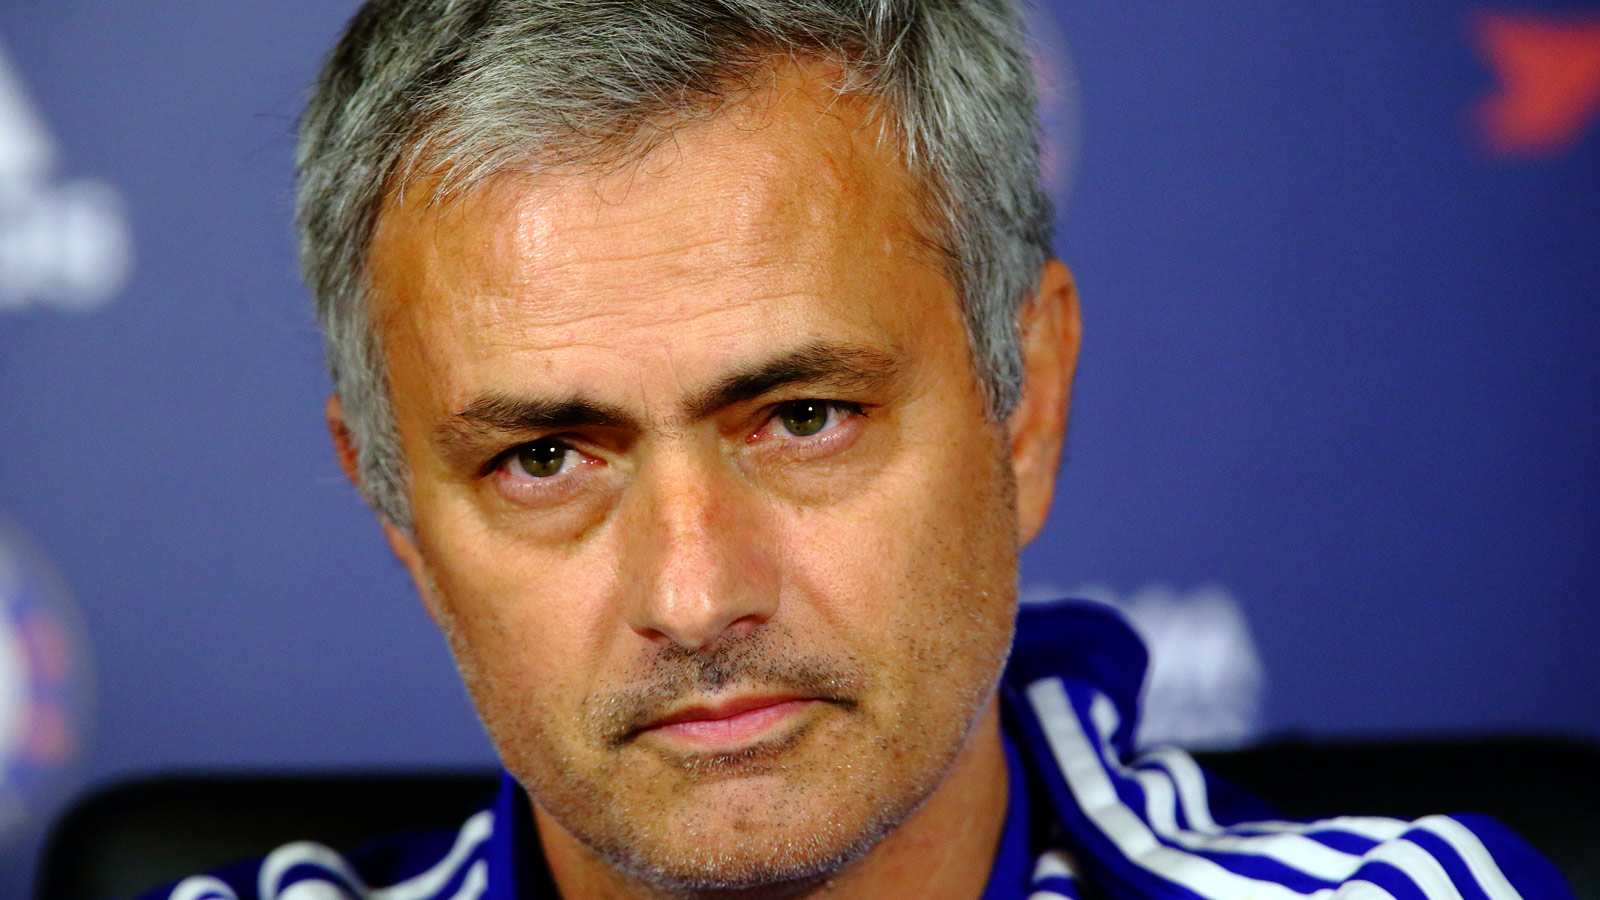 Mourinho keen on replacing Van Gaal at Manchester United